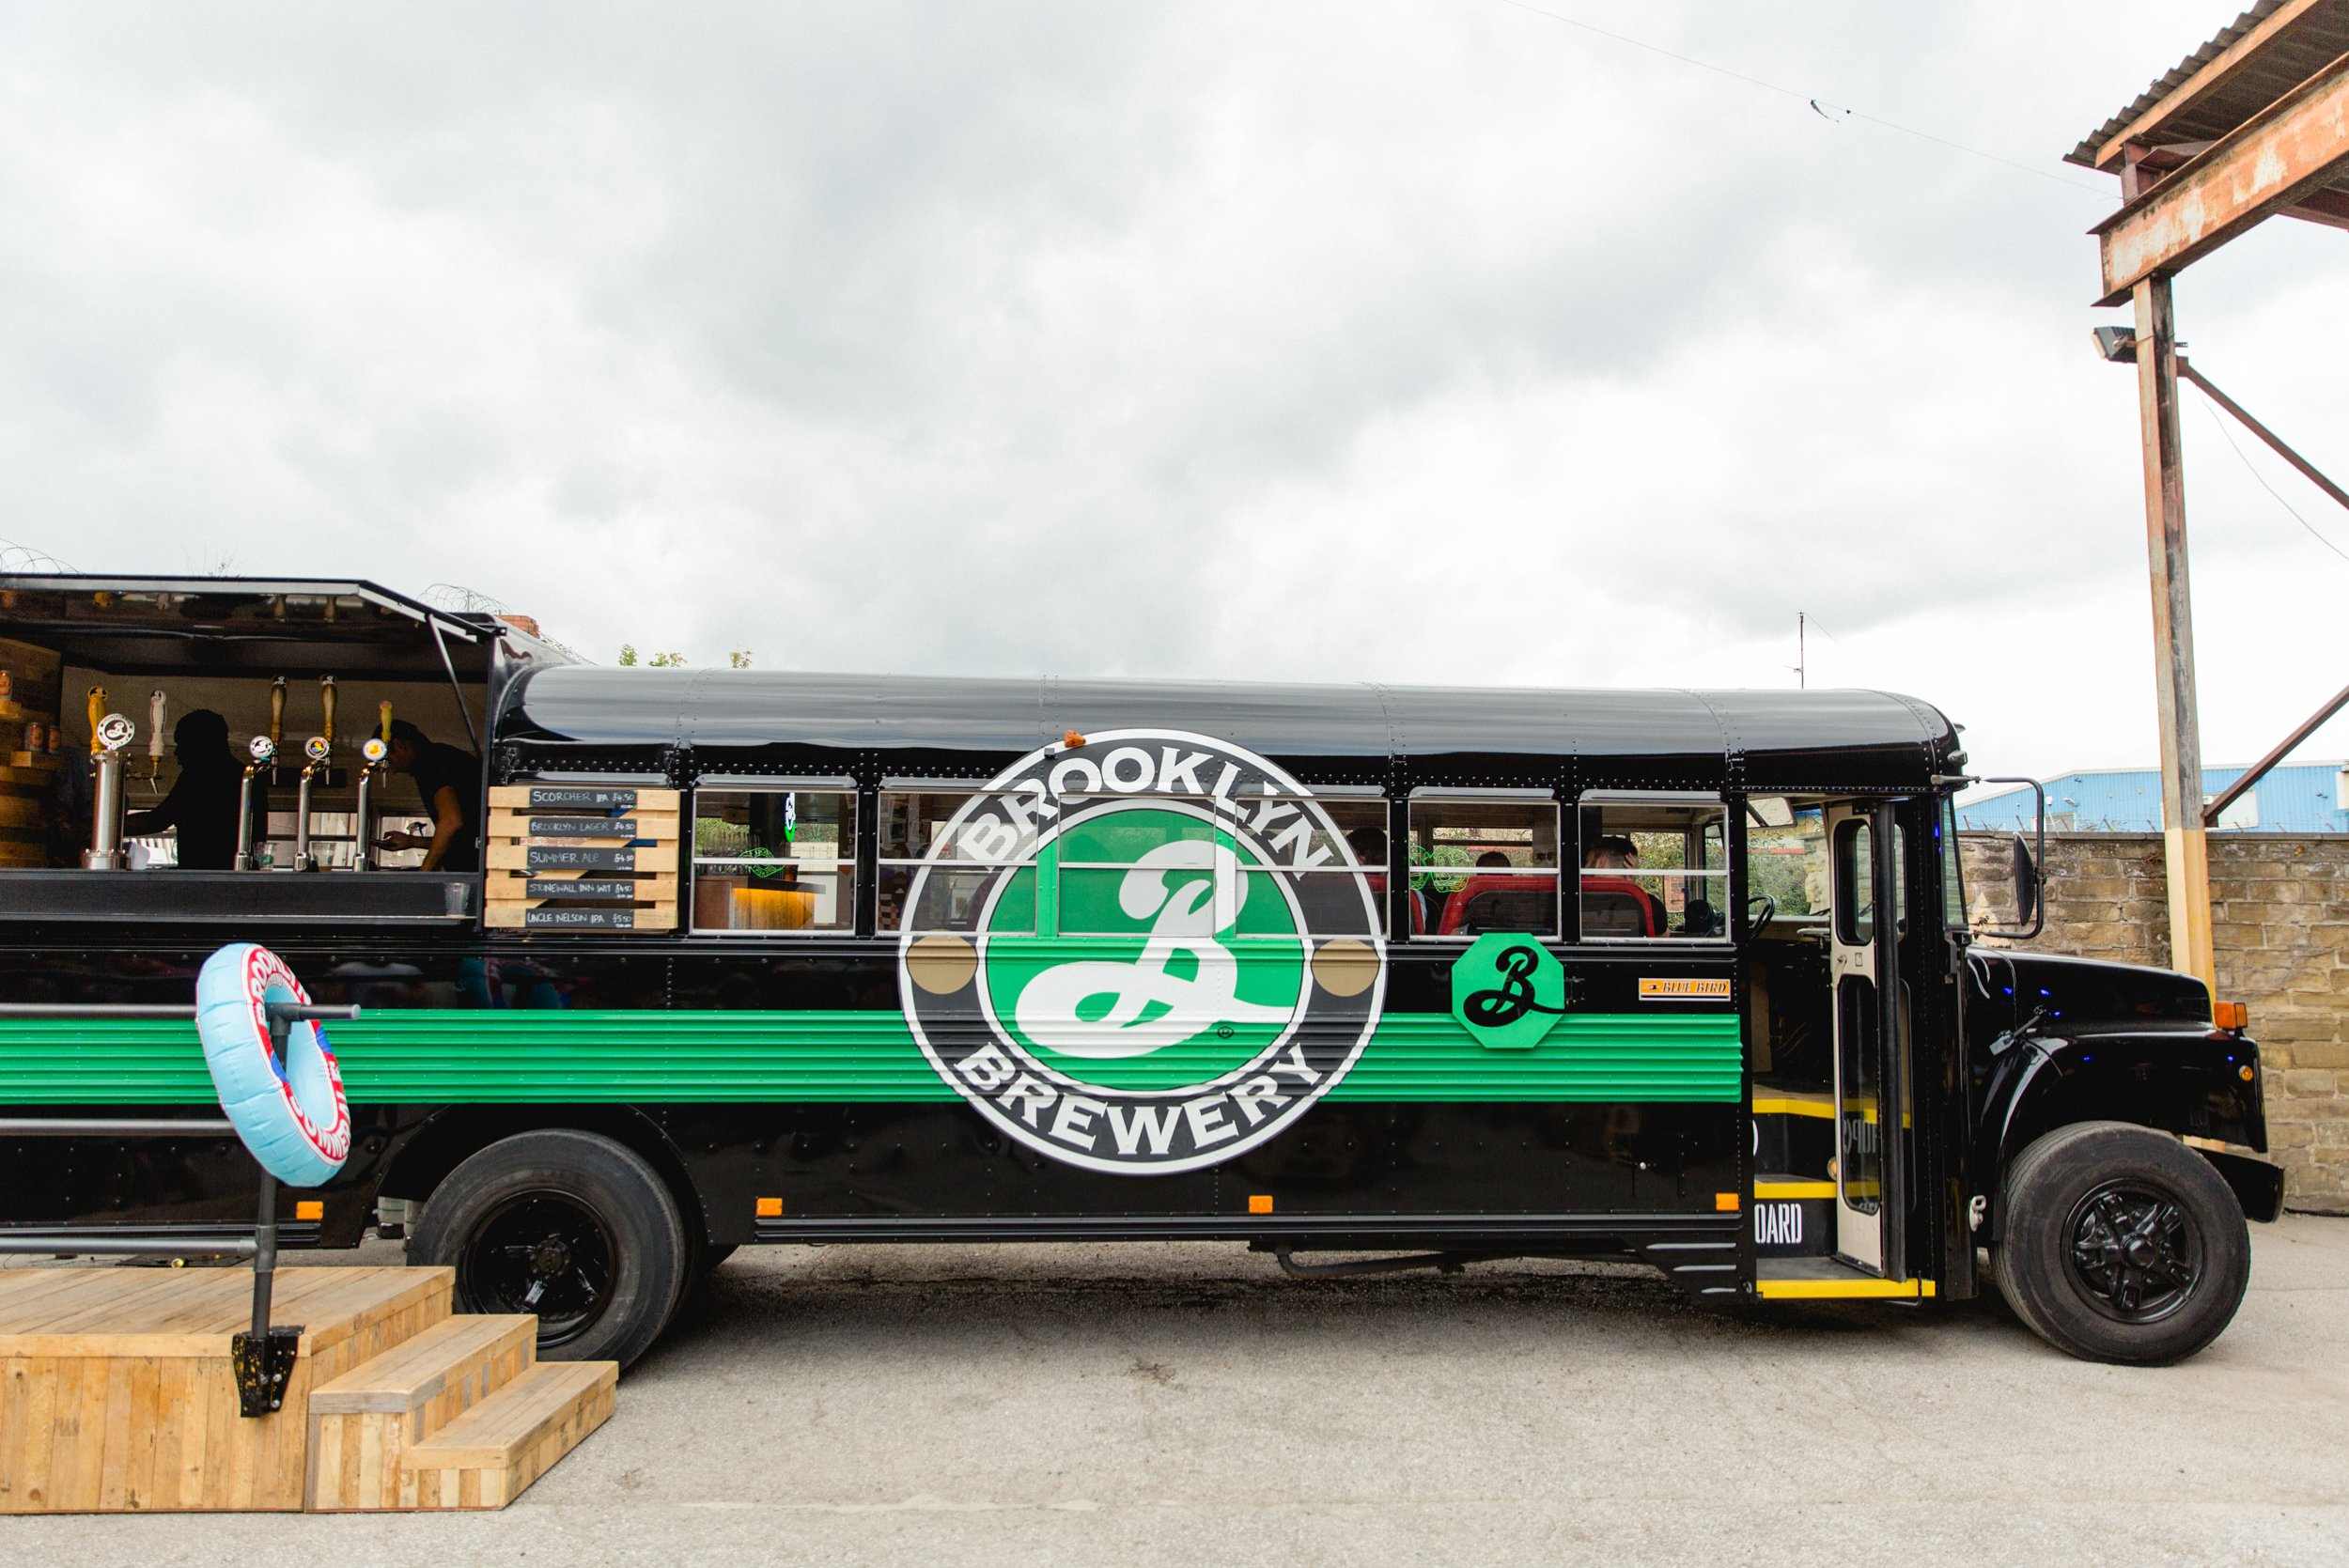 Brooklyn Brewery on tour in leeds at canal mills